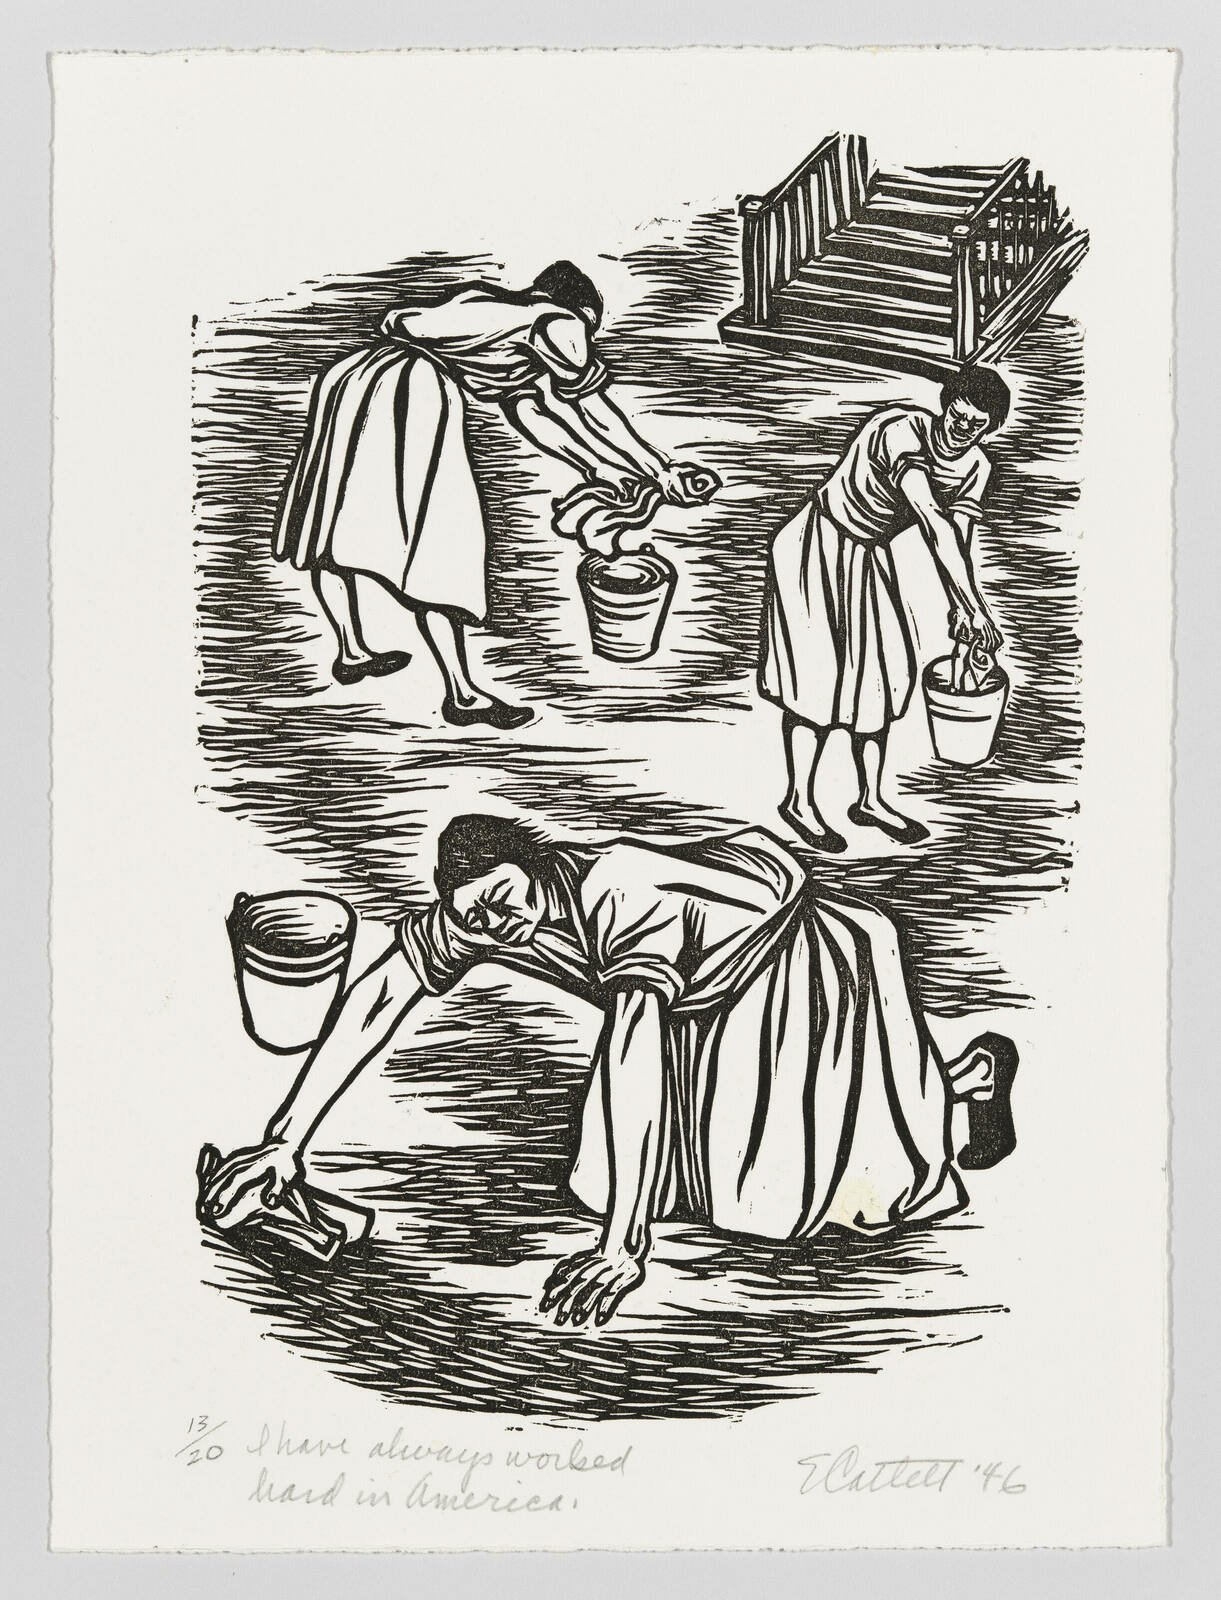 A Black woman on all fours scrubbing the floor with a rag, while two other women ring out rags in the background.